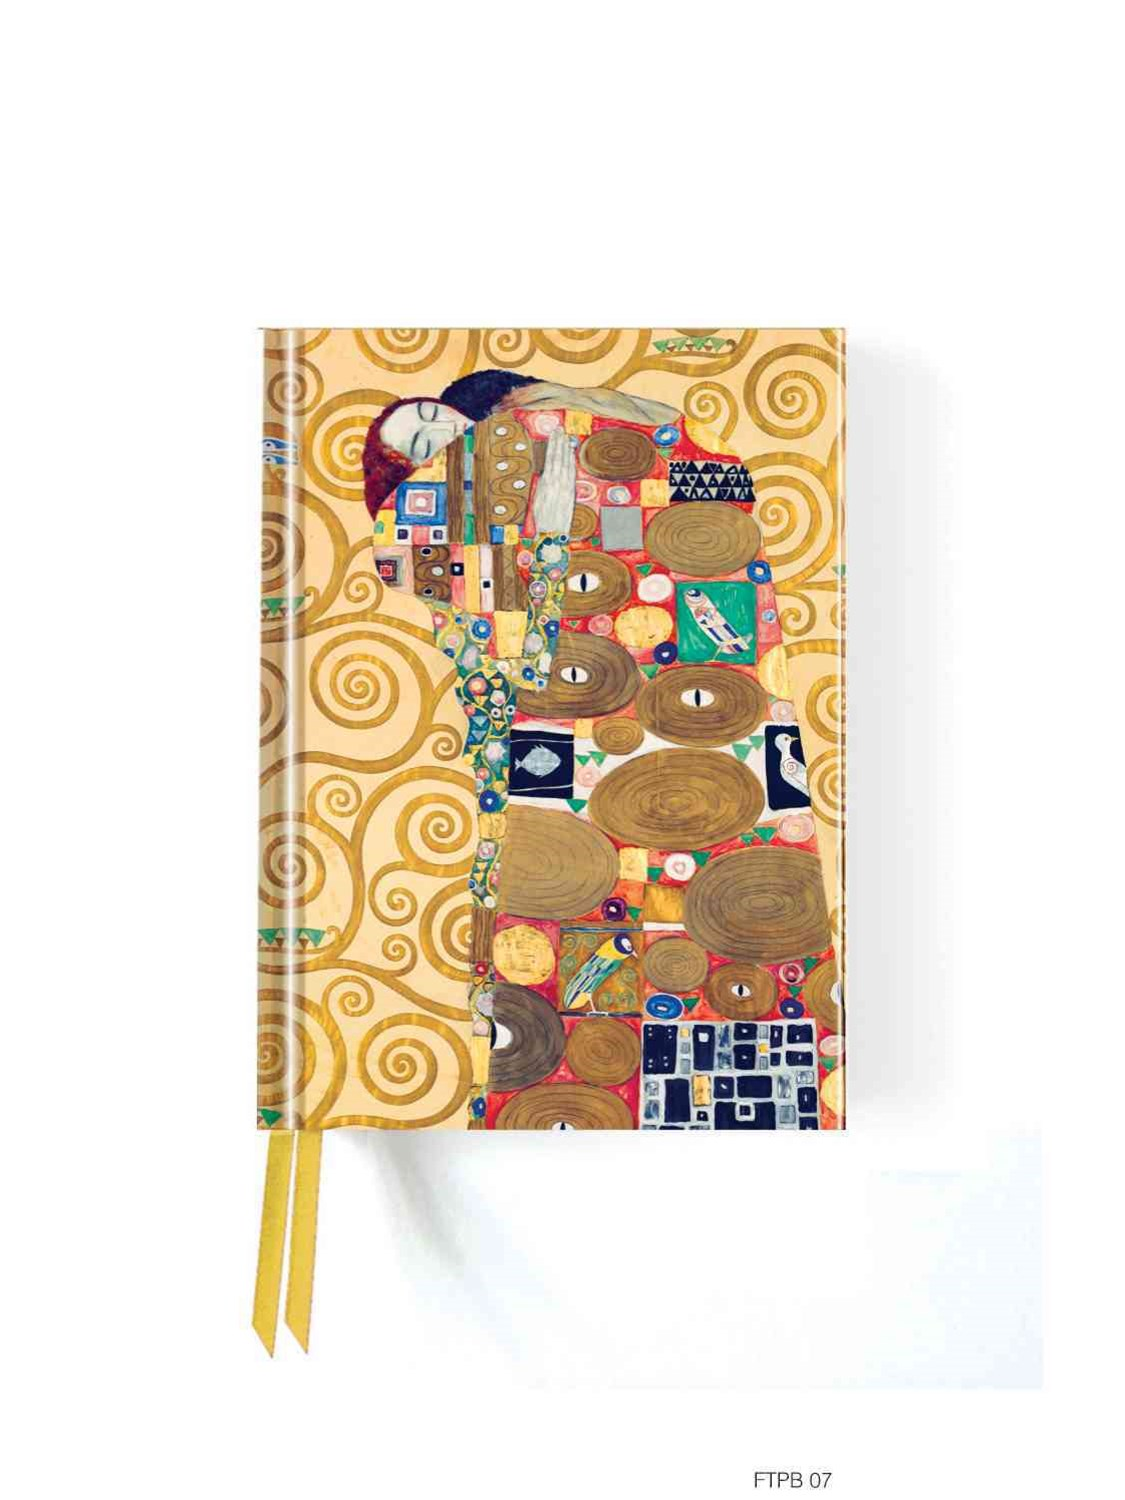 Foiled Pocket Journal: Klimt's Fulfiillment